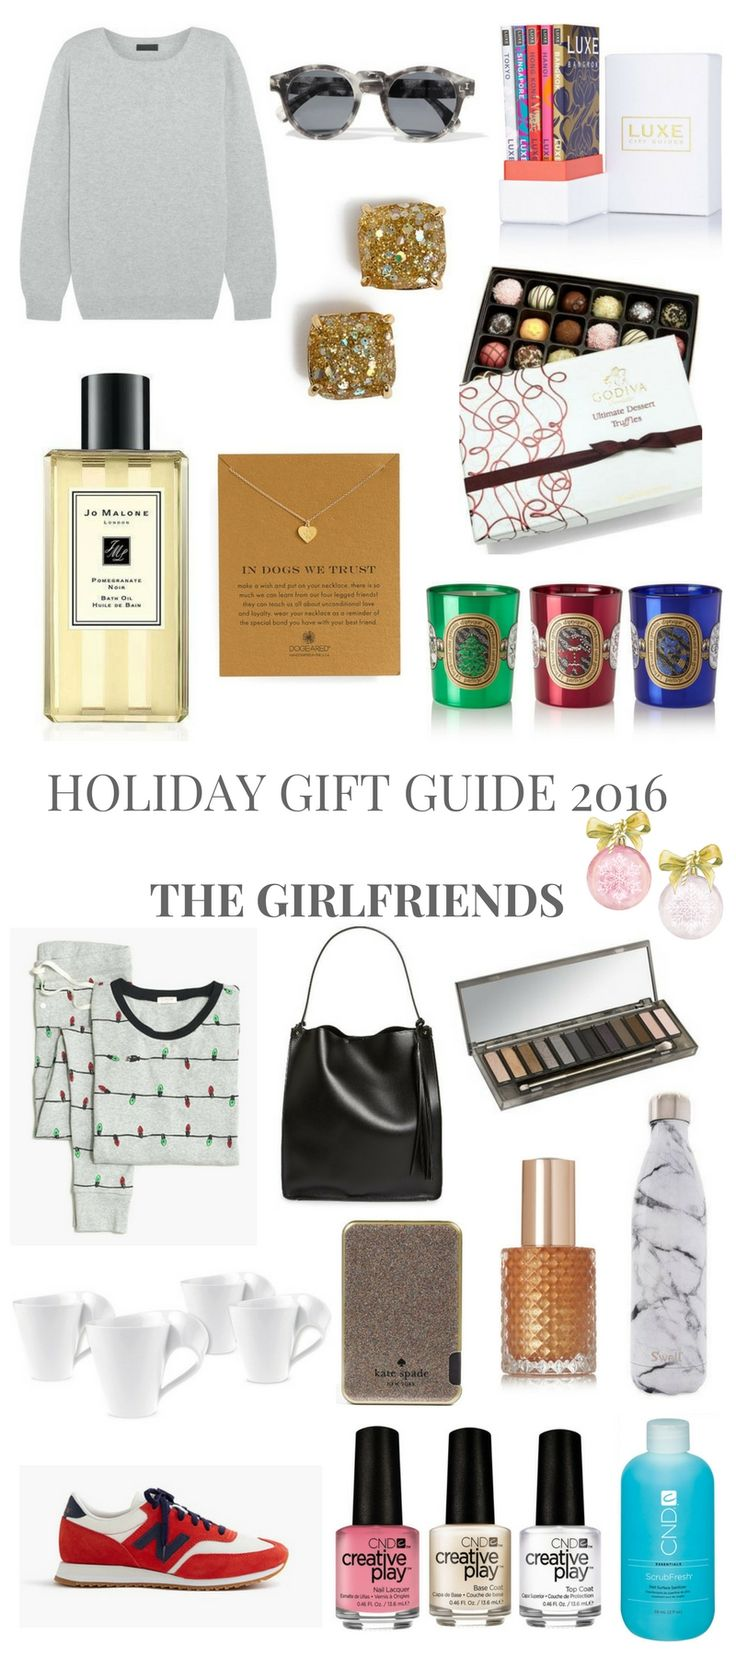 HOLIDAY GIFT GUIDE 2016 THE GIRLFRIENDS // Shoegal Out In The World